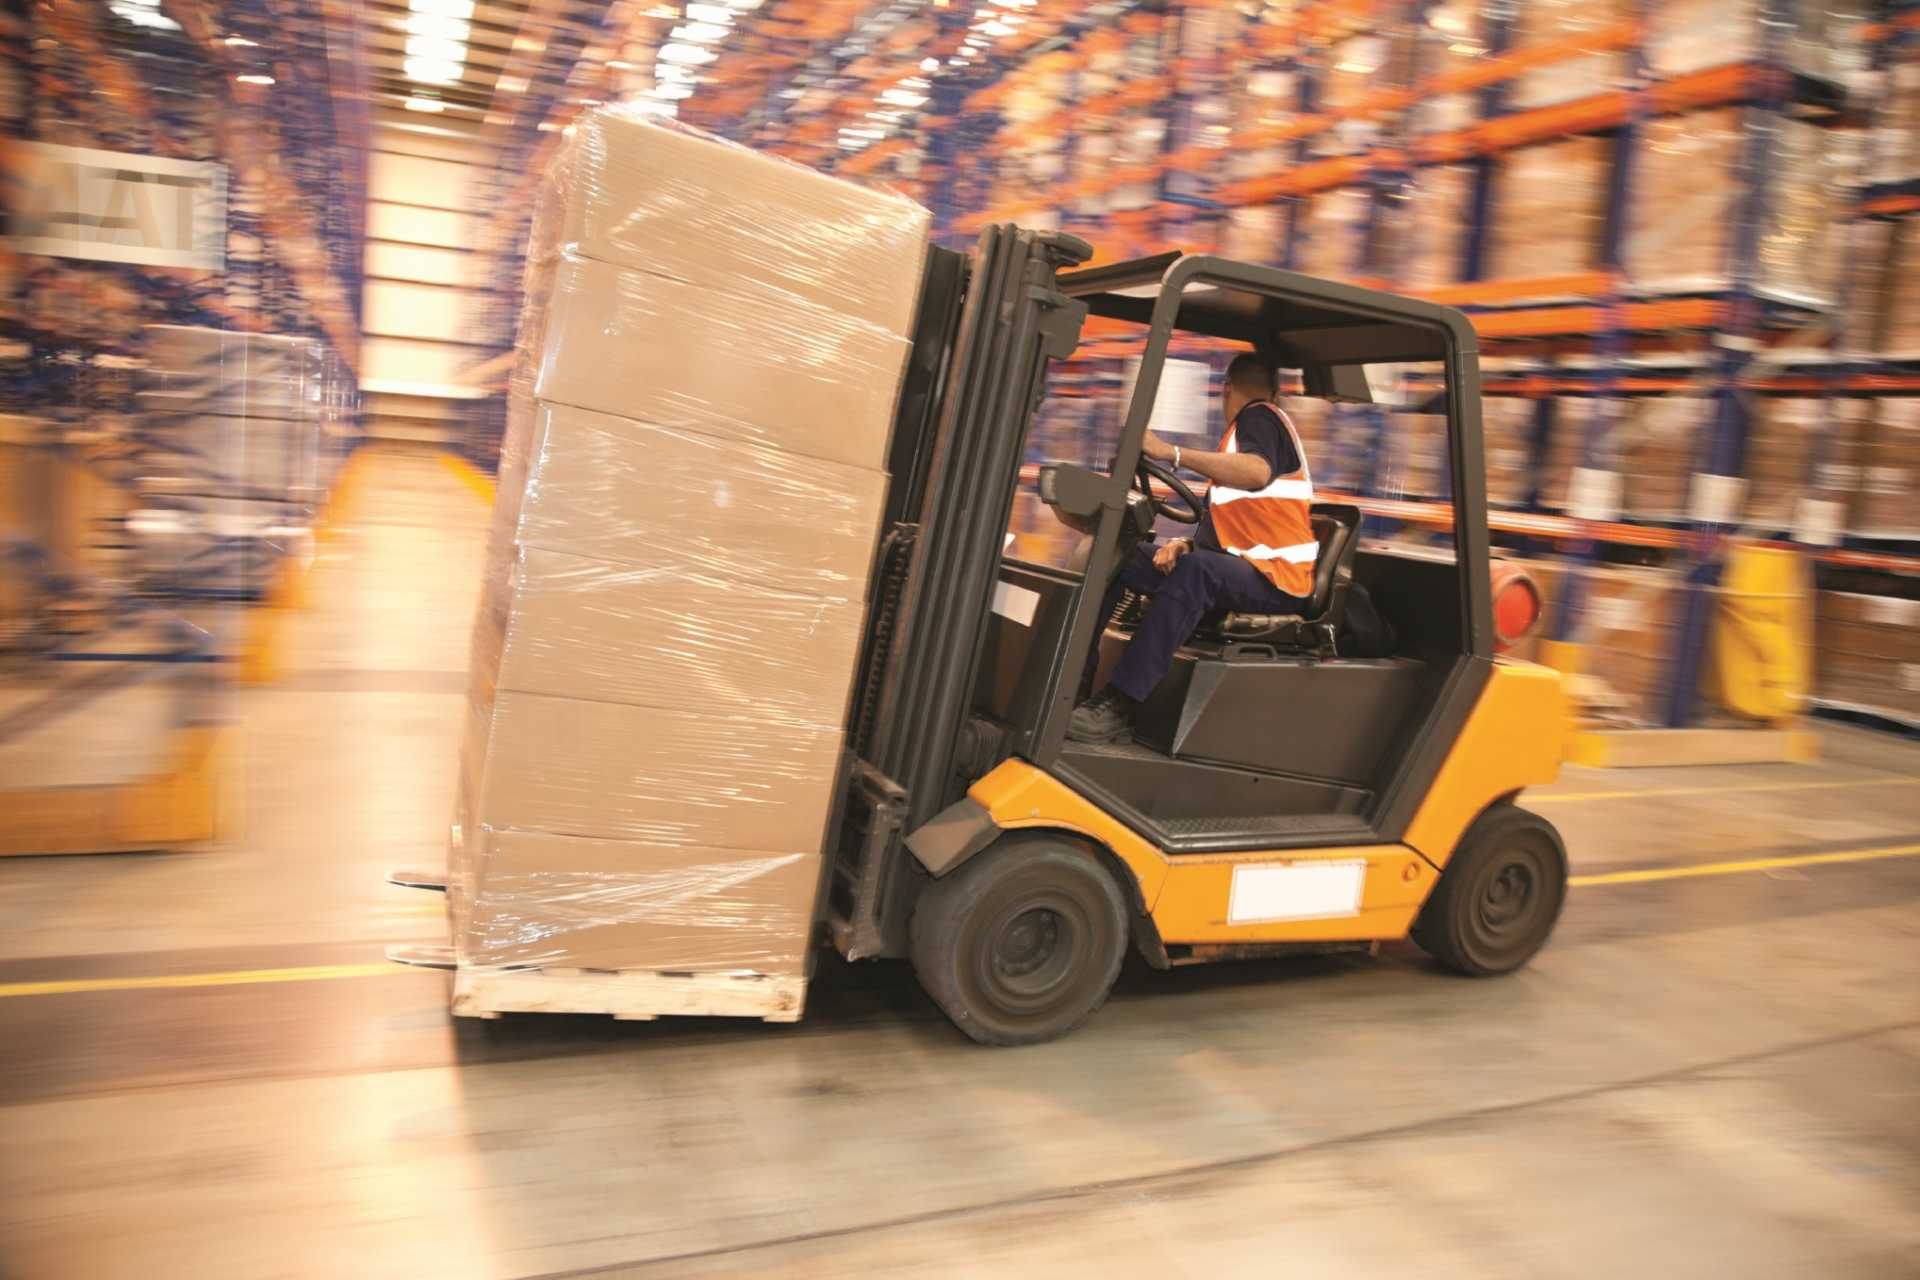 Why Purchase a Forklift When You Can Lease and Save